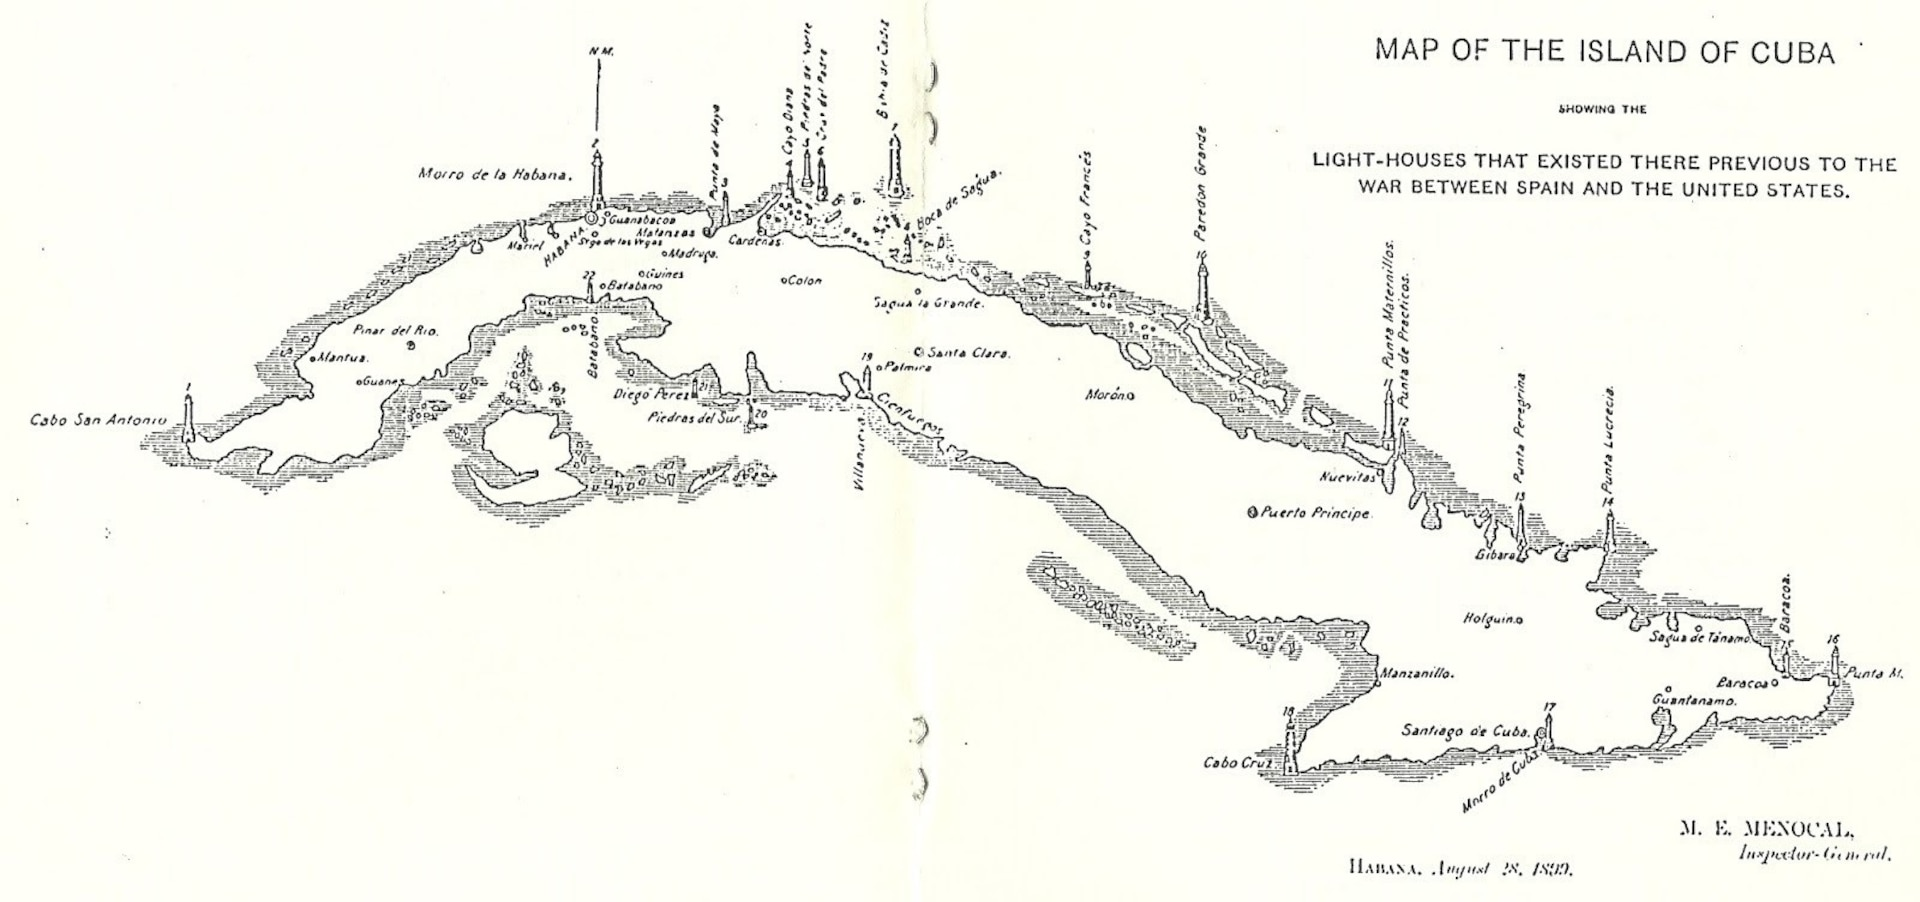 """An 1899 chart showing Cuba's lighthouses after the Spanish surrender. Guantanamo Bay is located to the right at southern end of the island. (""""Los Faros en Cuba."""" El Pensamiento Blogspot.1 JUN 2018. https://pensamiento-2012.blogspot.com/2018/06/los-faros-en-cuba.html.)"""